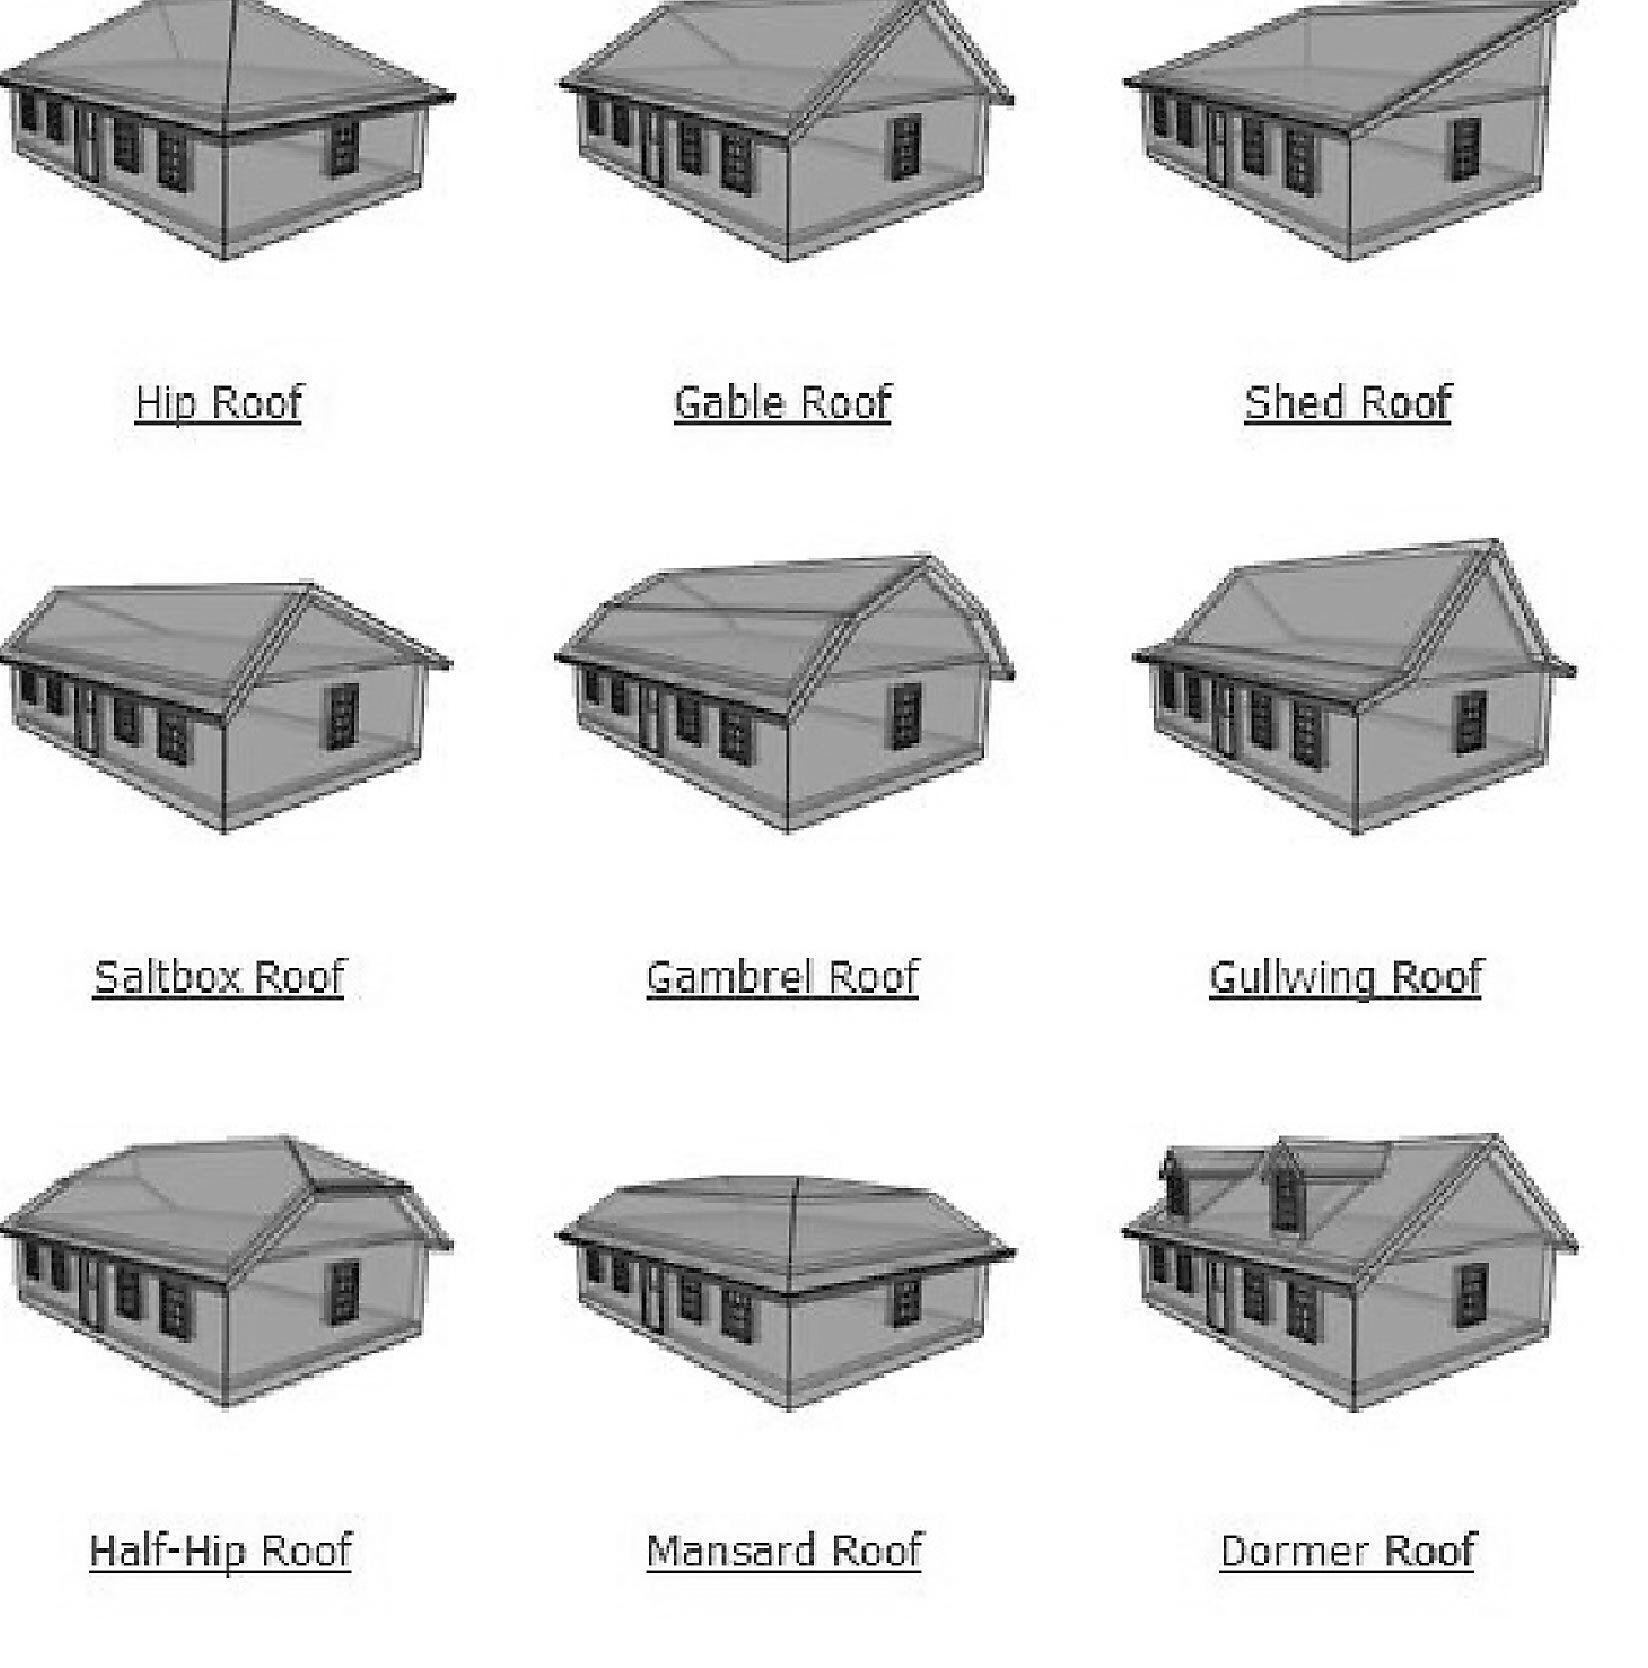 Roof Types 3d Bb Roof Types Pinterest: types of modern houses